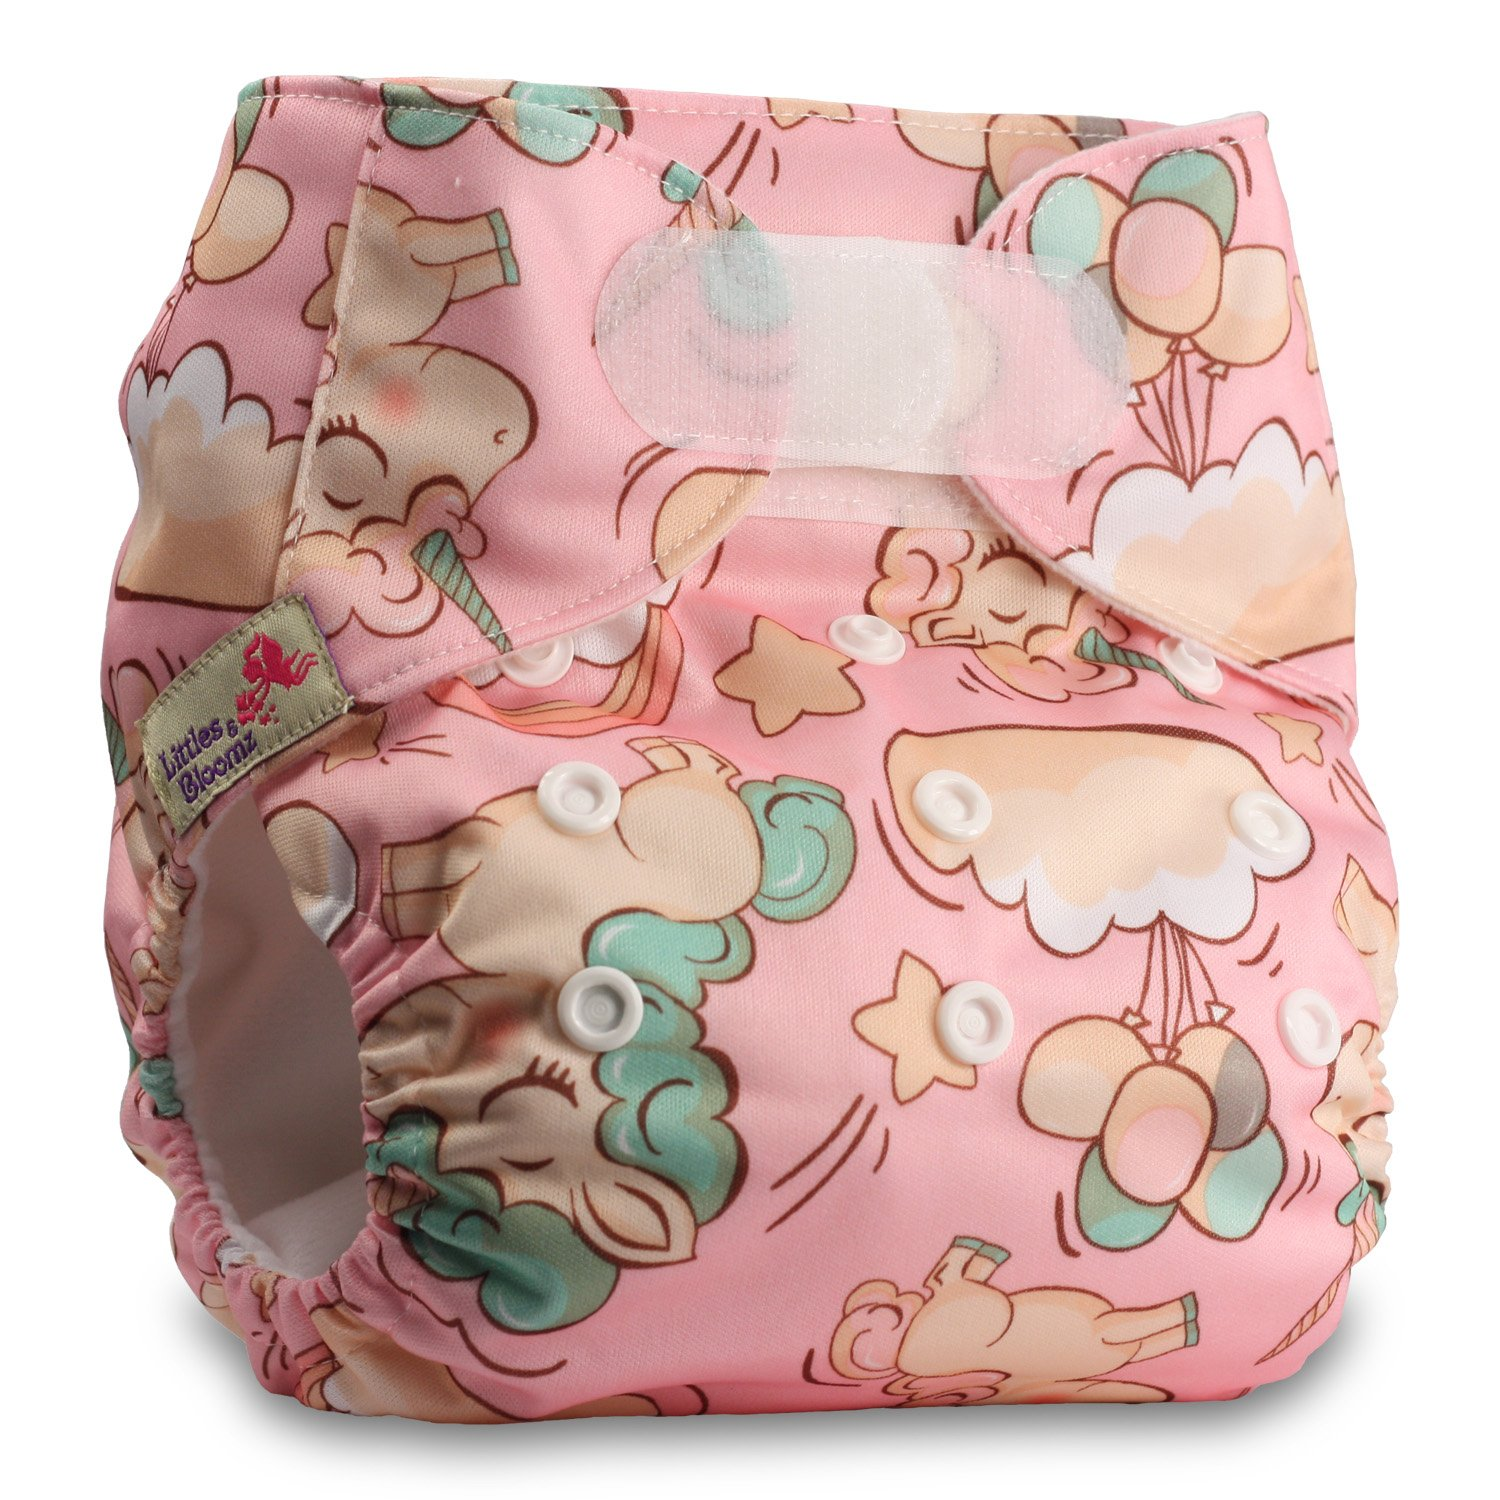 Set of 1 Littles /& Bloomz Reusable Pocket Cloth Nappy Pattern 48 Fastener: Hook-Loop with 1 Bamboo Insert